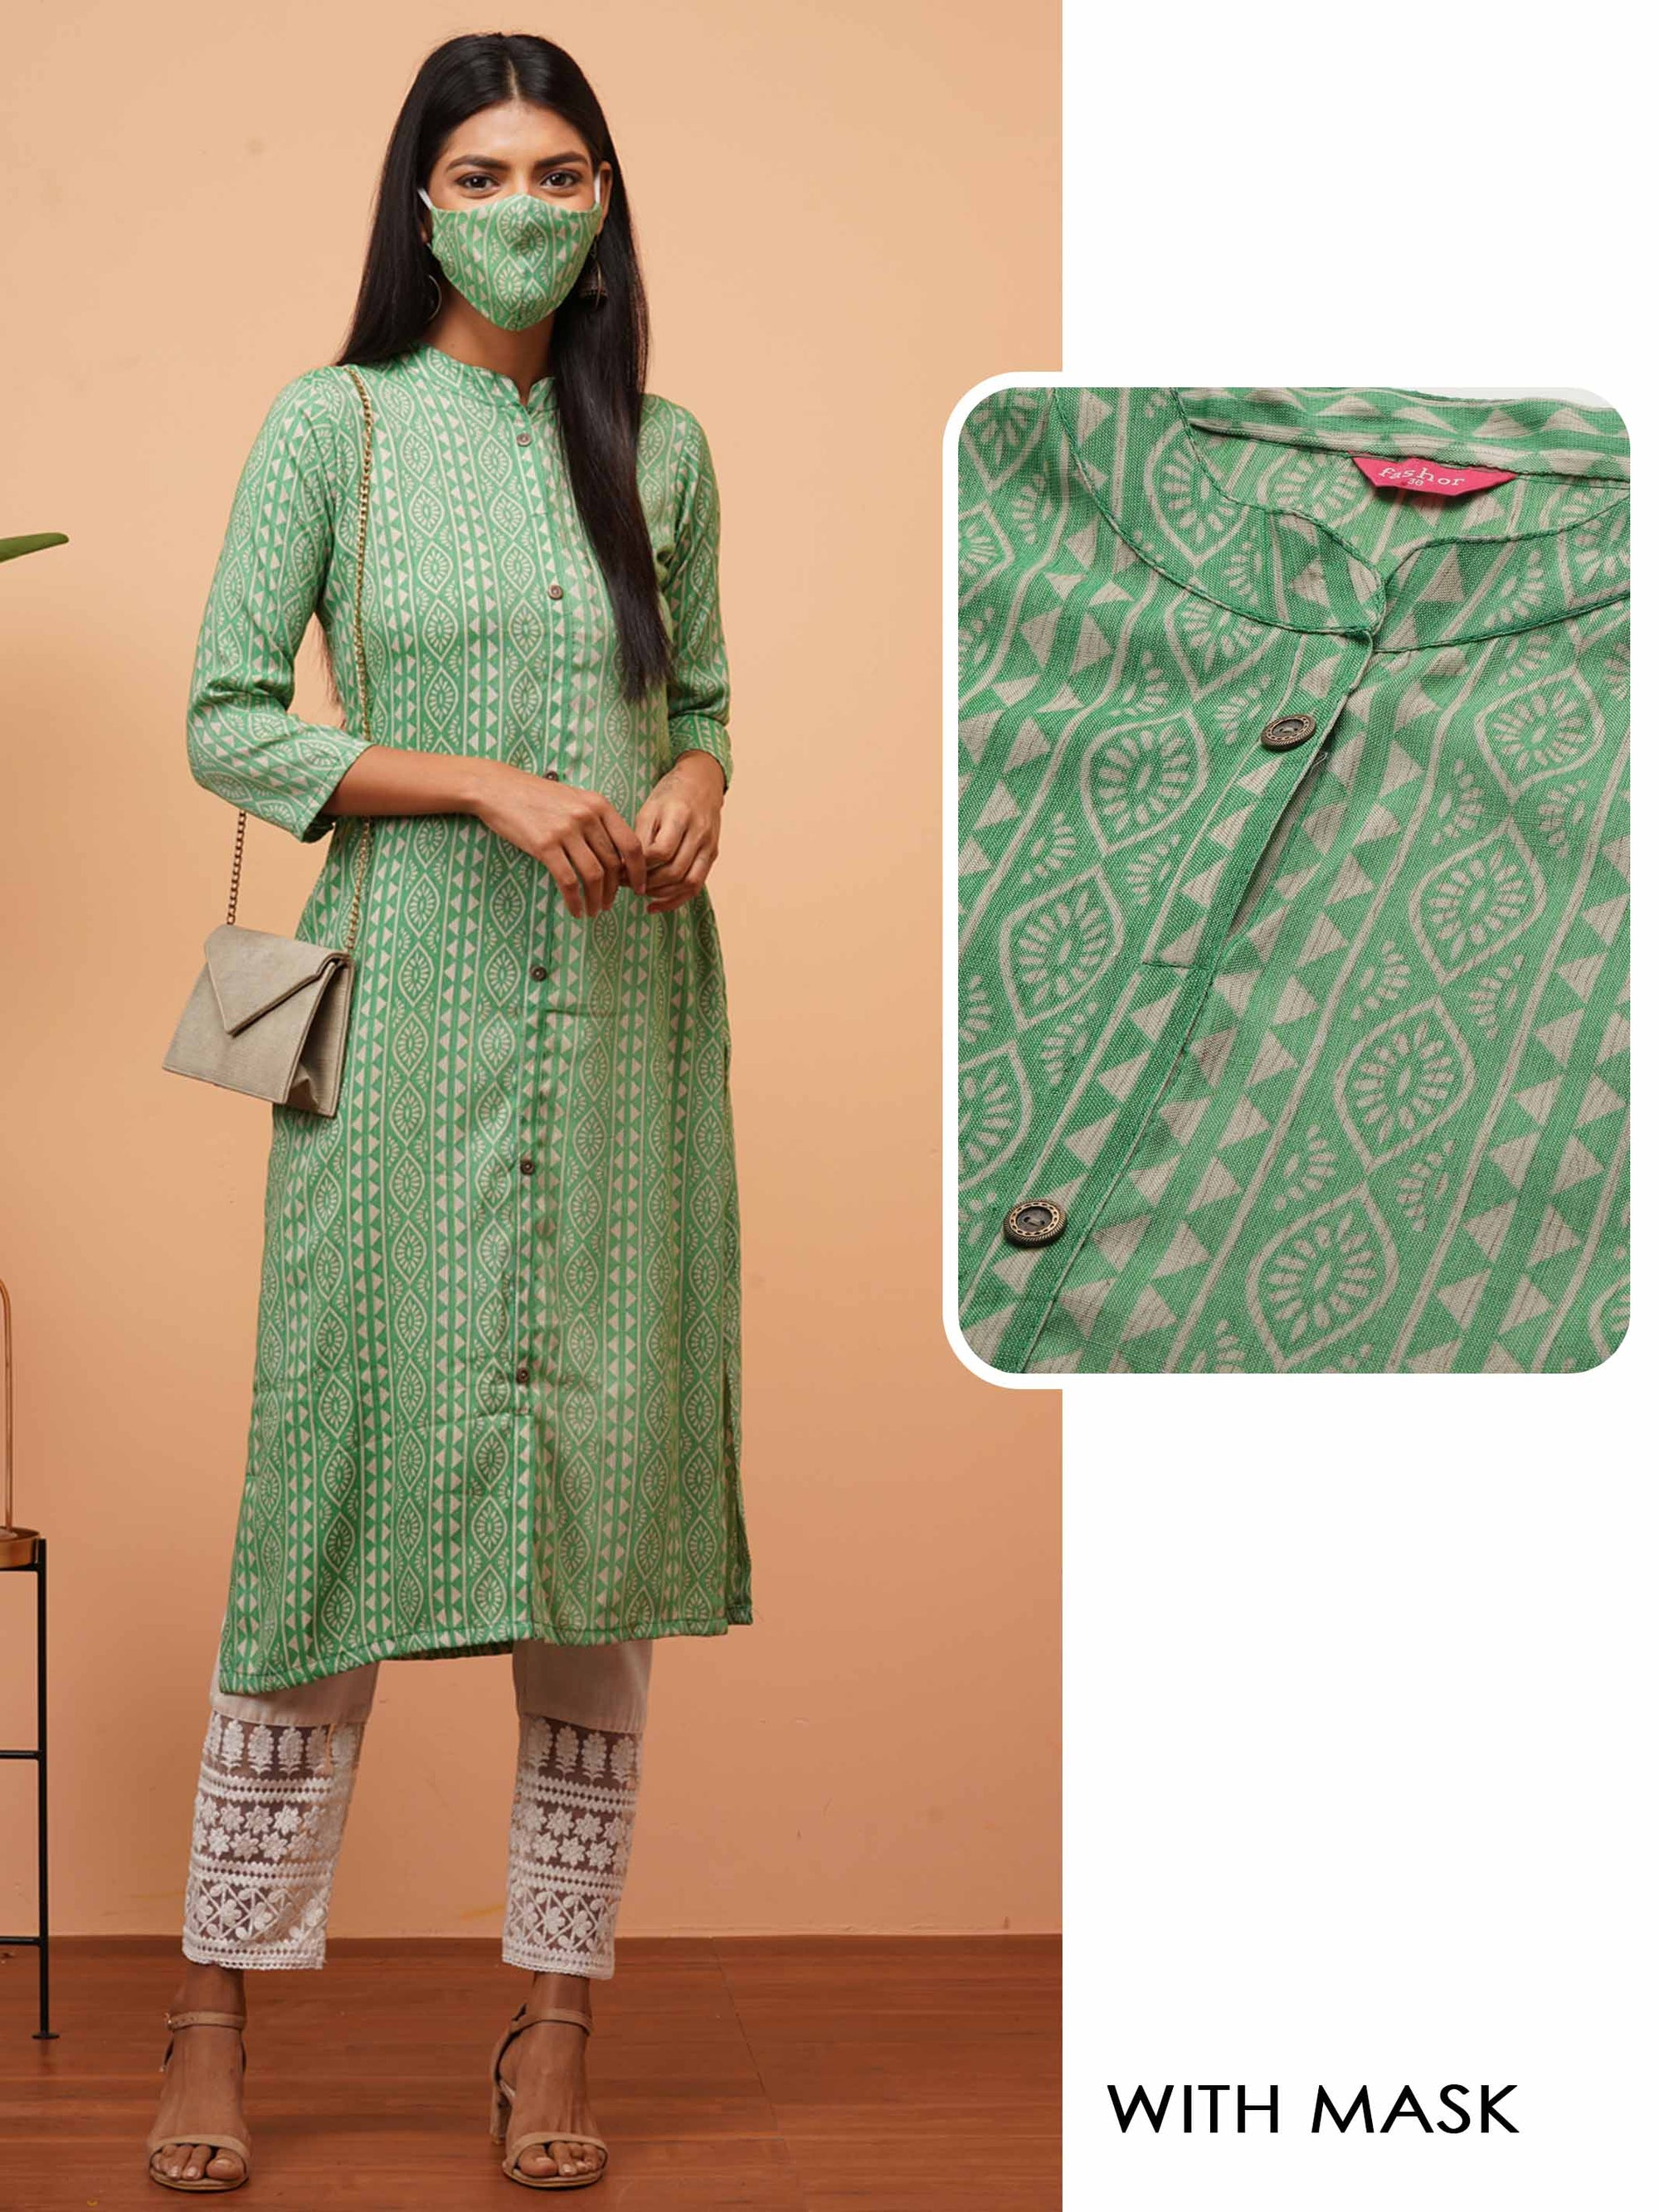 Ethnic Desne Printed Straight Kurta with 2-Ply Mask - Green